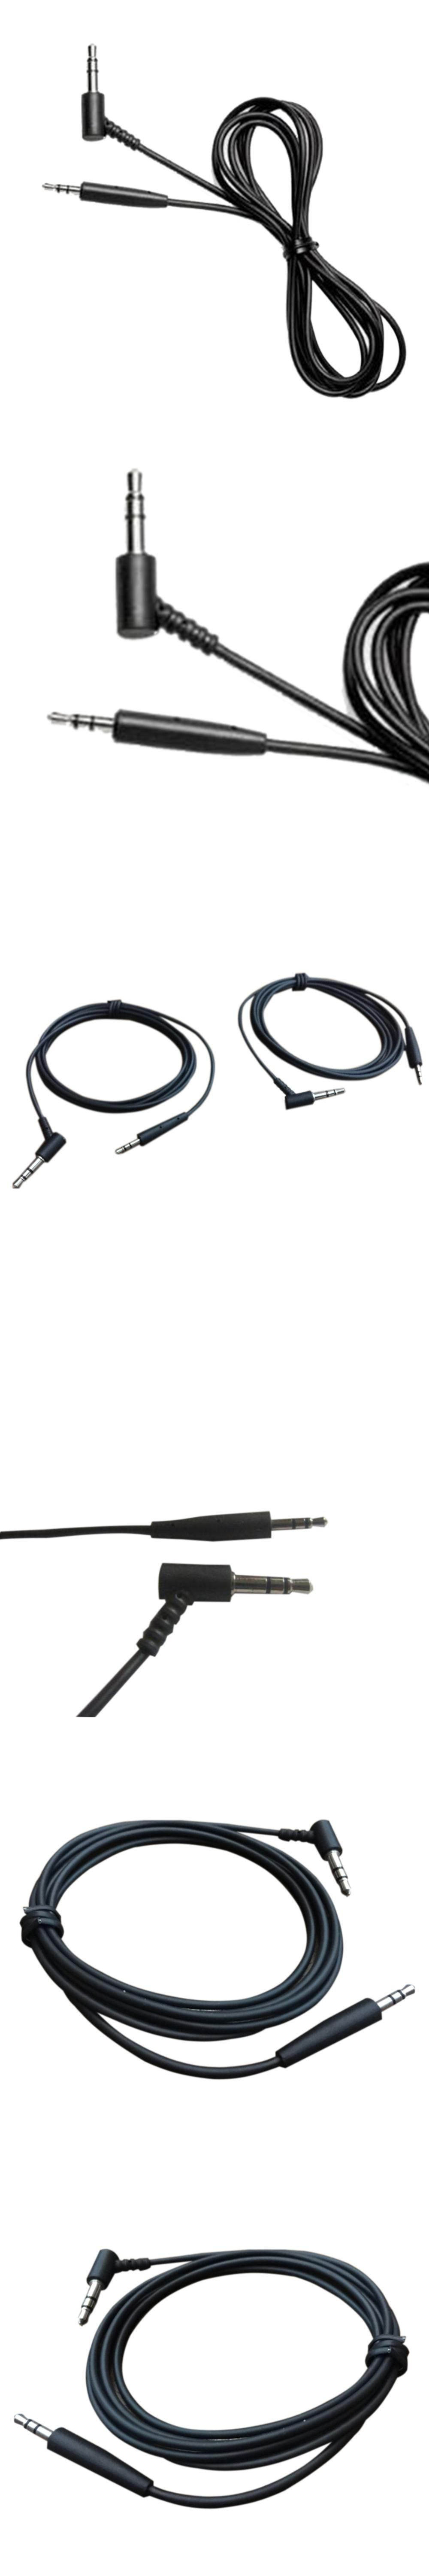 Audio Extension Cord Earphone Cable AUX 2.5mm To 3.5mm Replacement ...